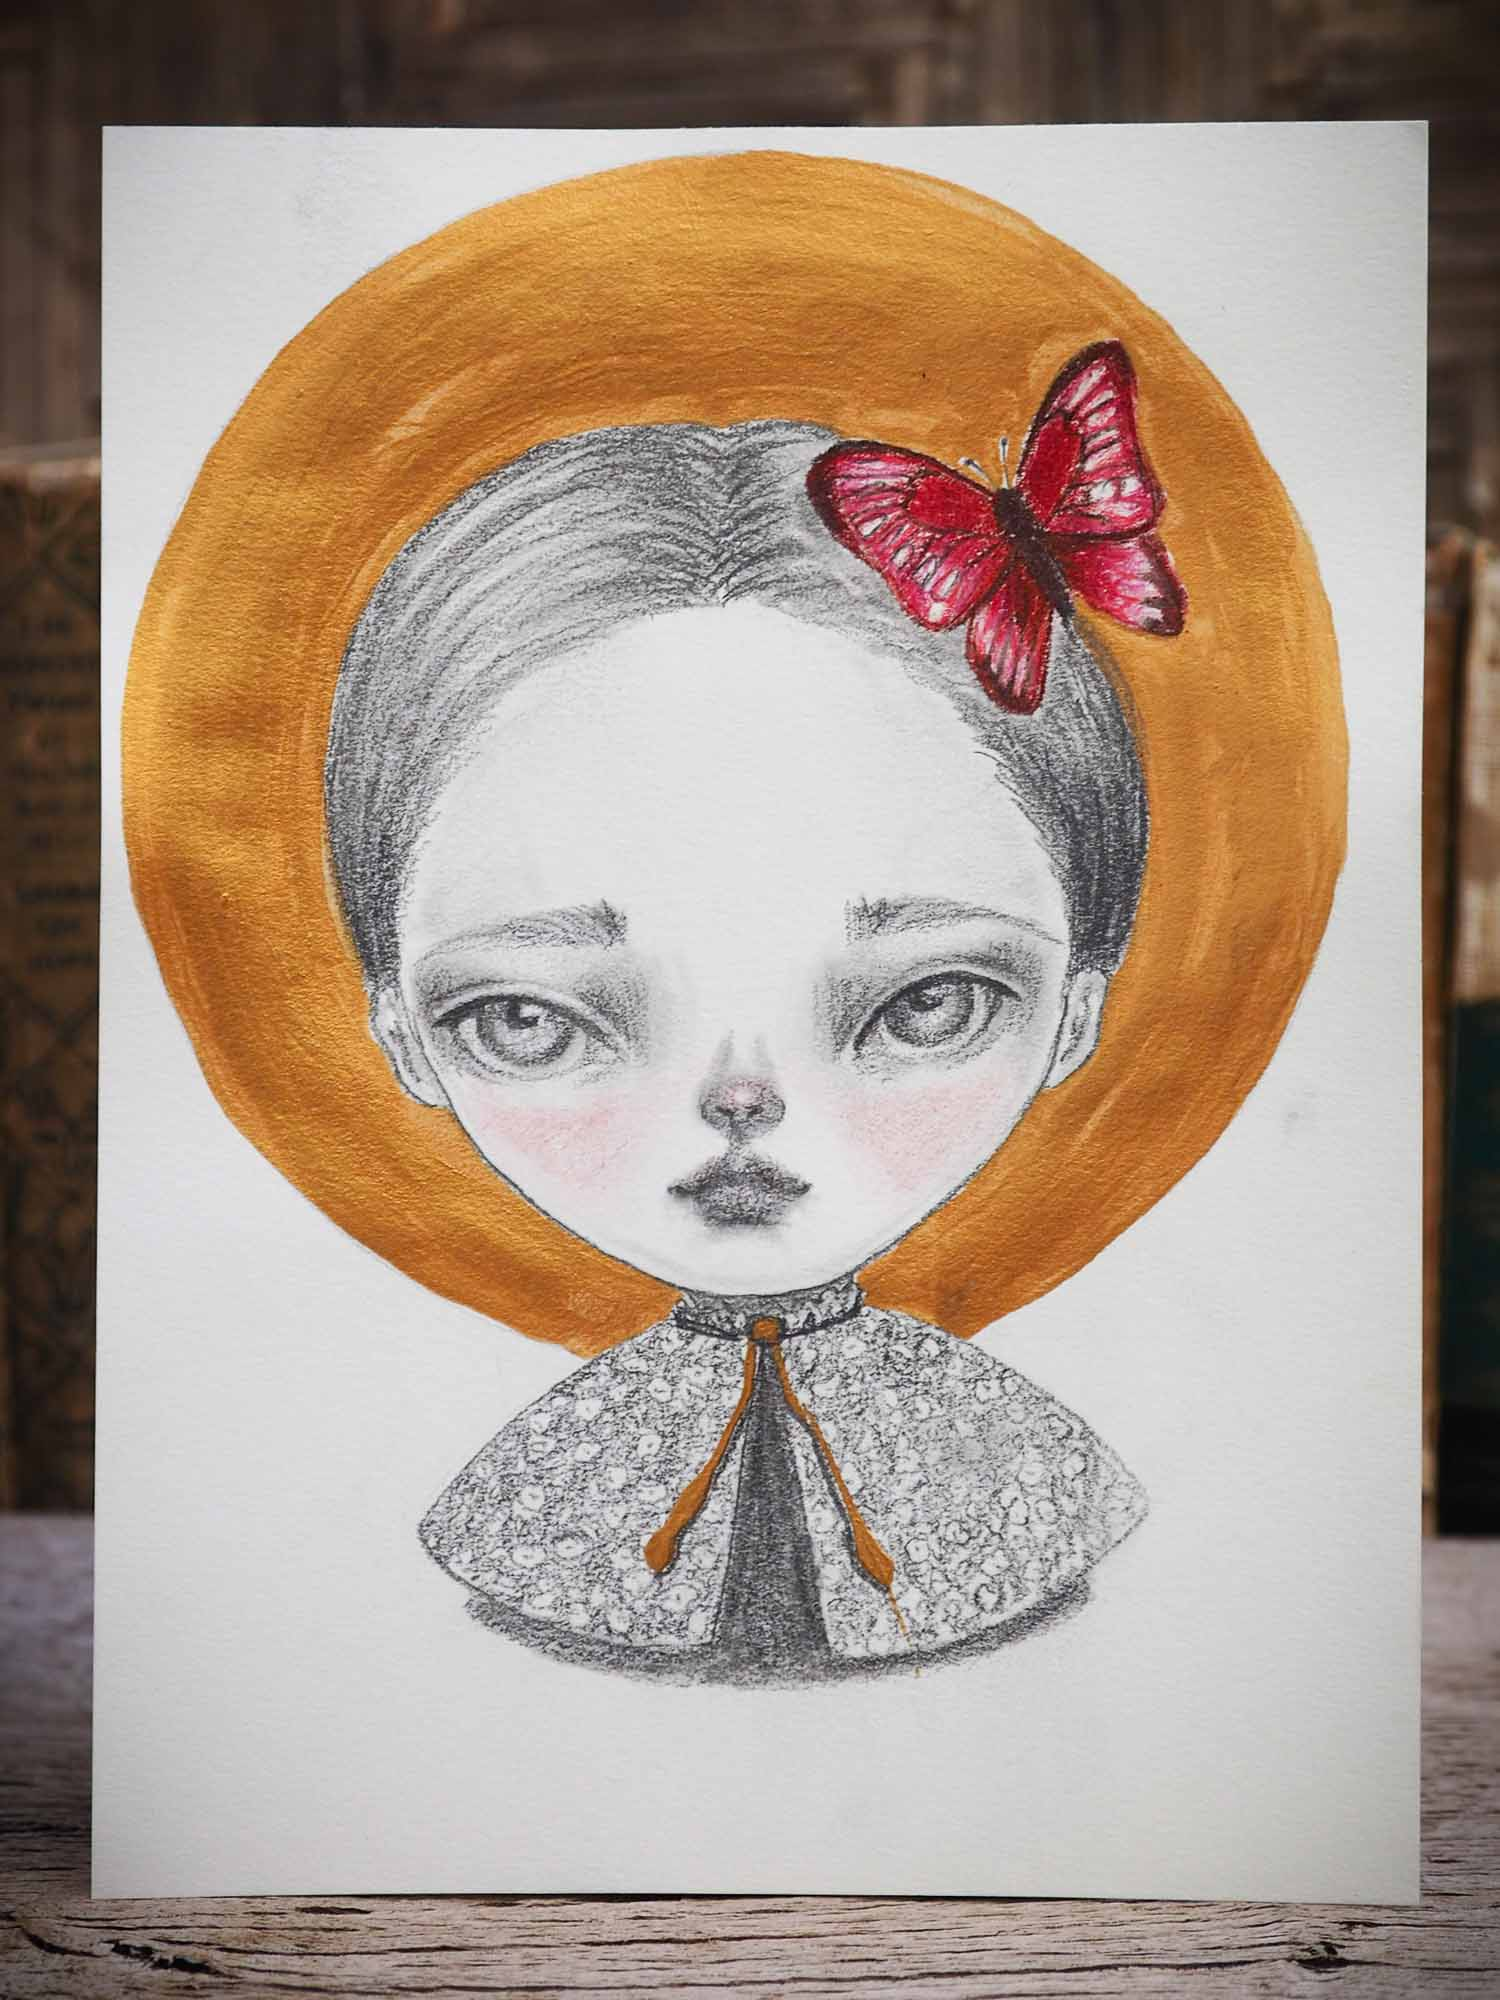 Original mixed media illustration in Pencil, watercolor, gouache and ink by Danita Art. A beautiful girl with deep mesmerizing and expressive eyes has a red butterfly perched on her head like a brooch.